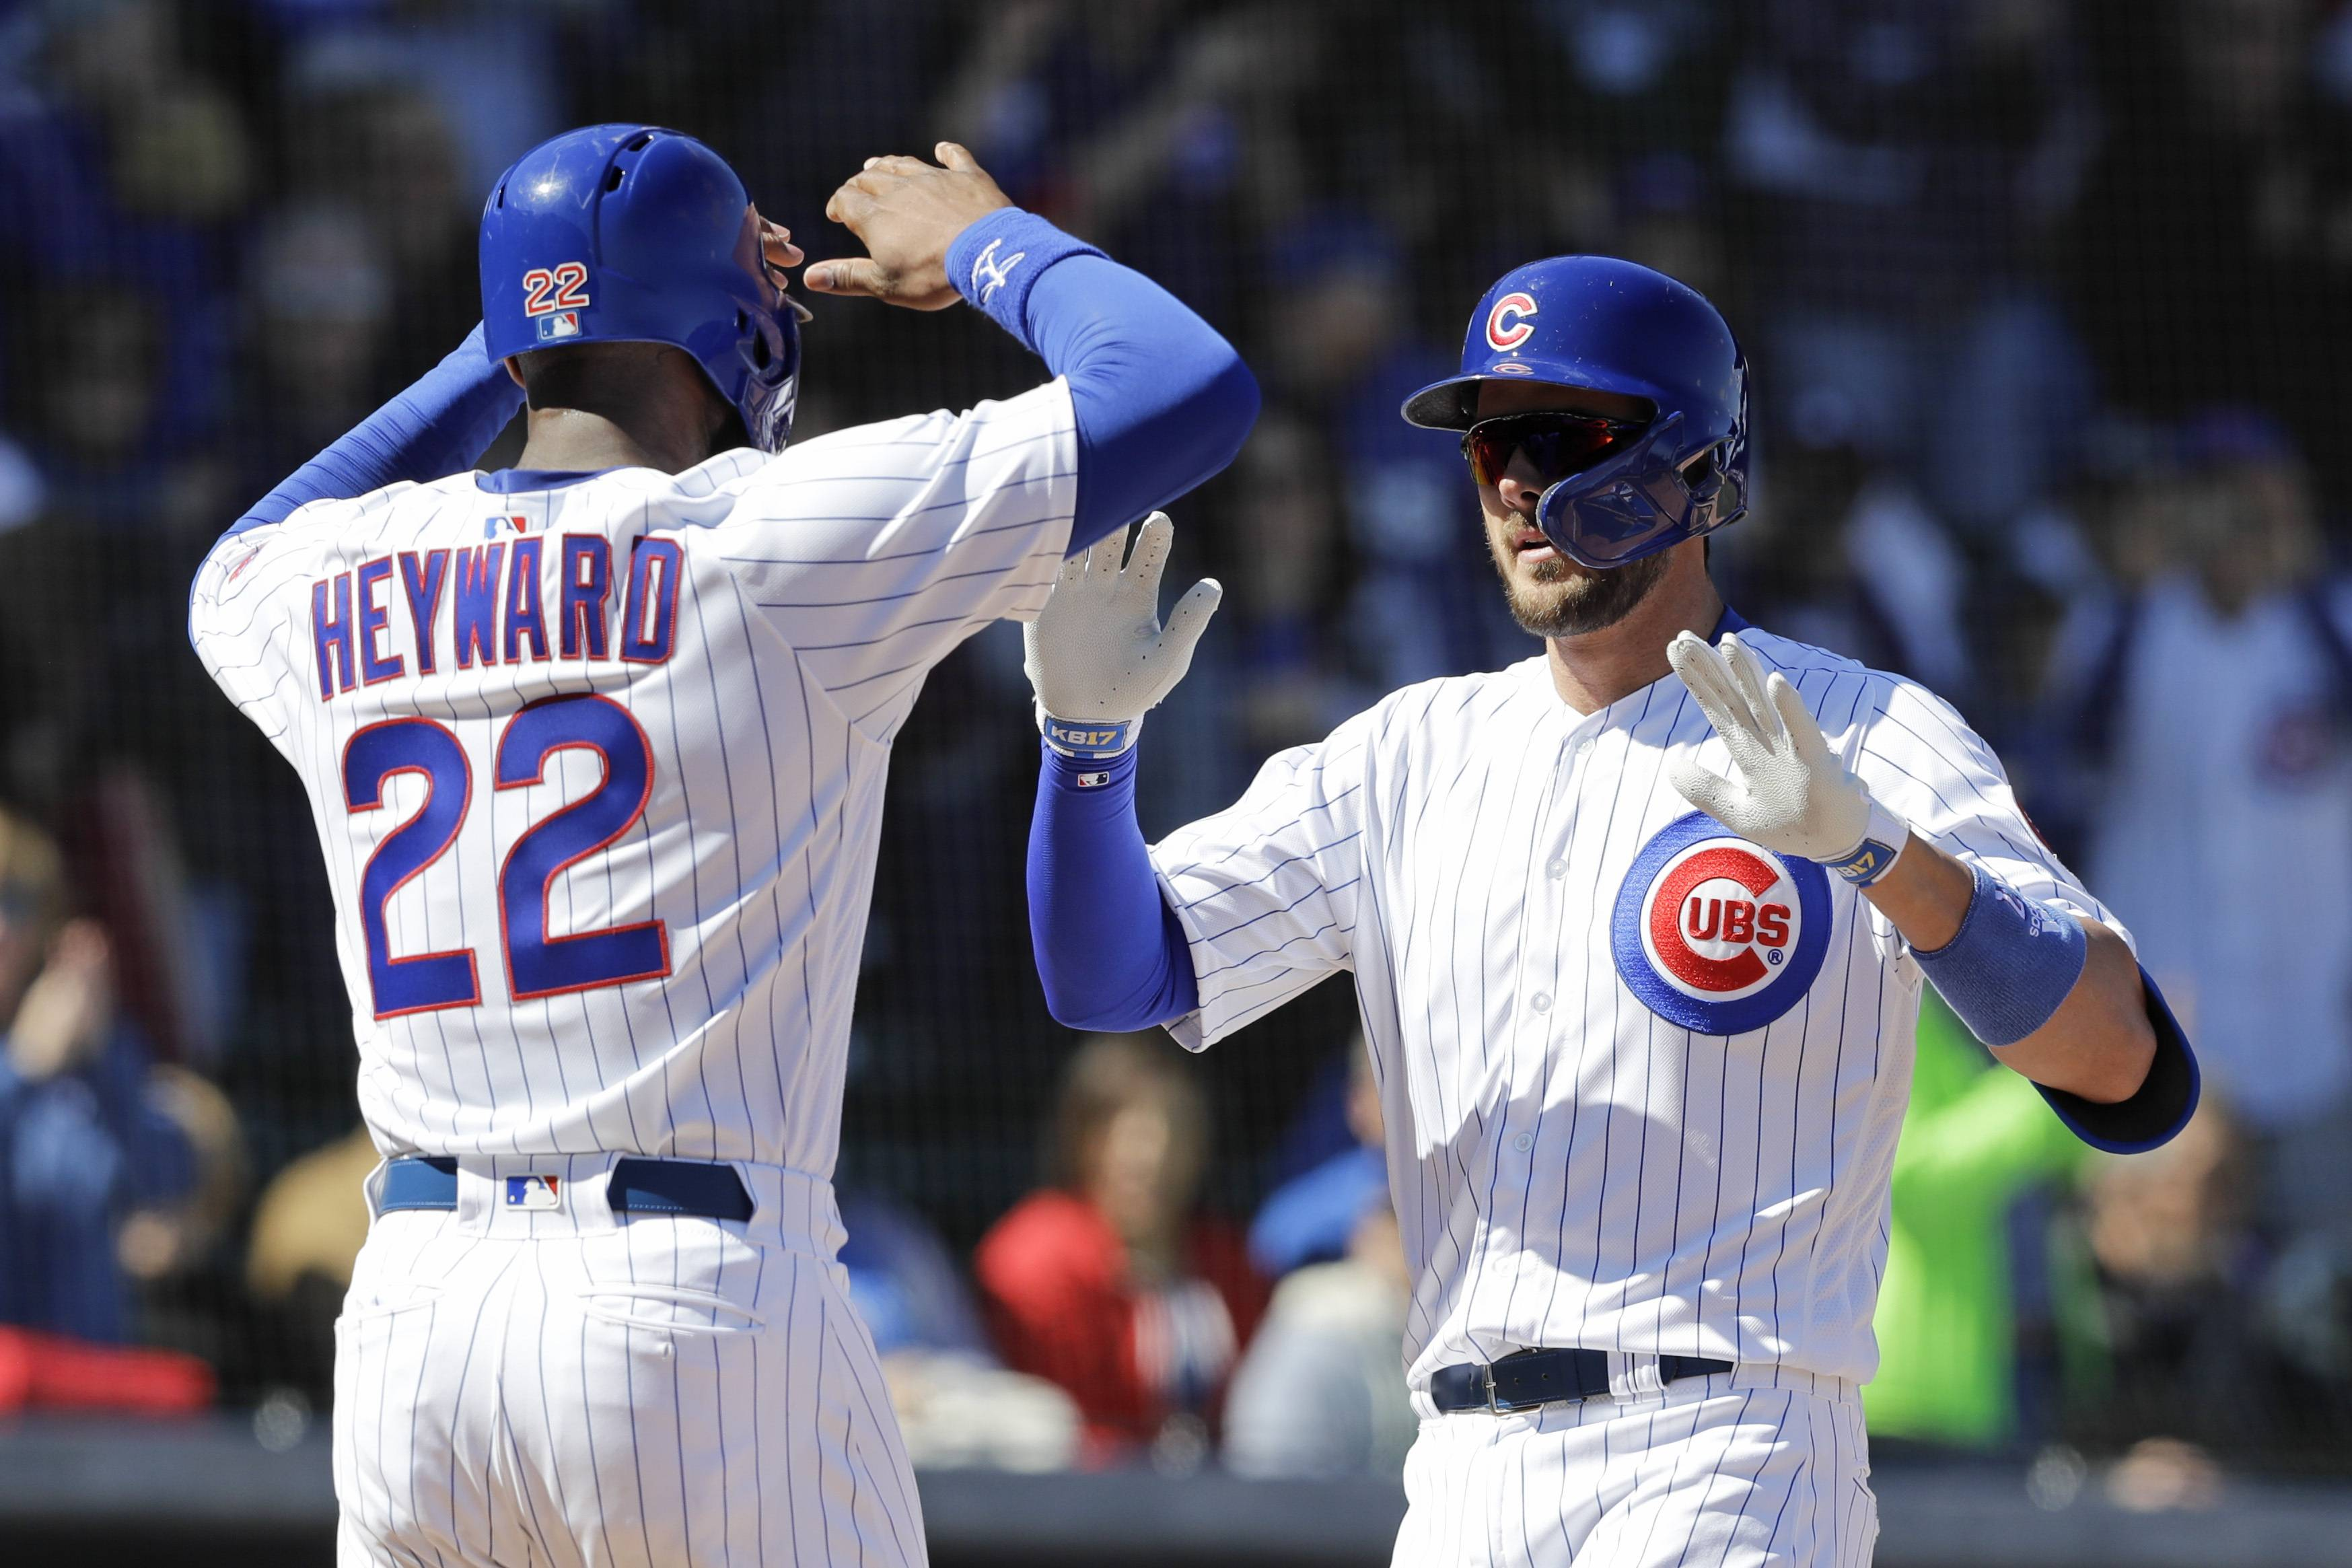 Chicago Cubs' Kris Bryant, right, celebrates with Jason Heyward after hitting a two-run home run during the first inning of a spring training baseball game against the Milwaukee Brewers, Saturday, Feb. 23, 2019, in Mesa, Ariz. (AP Photo/Darron Cummings)